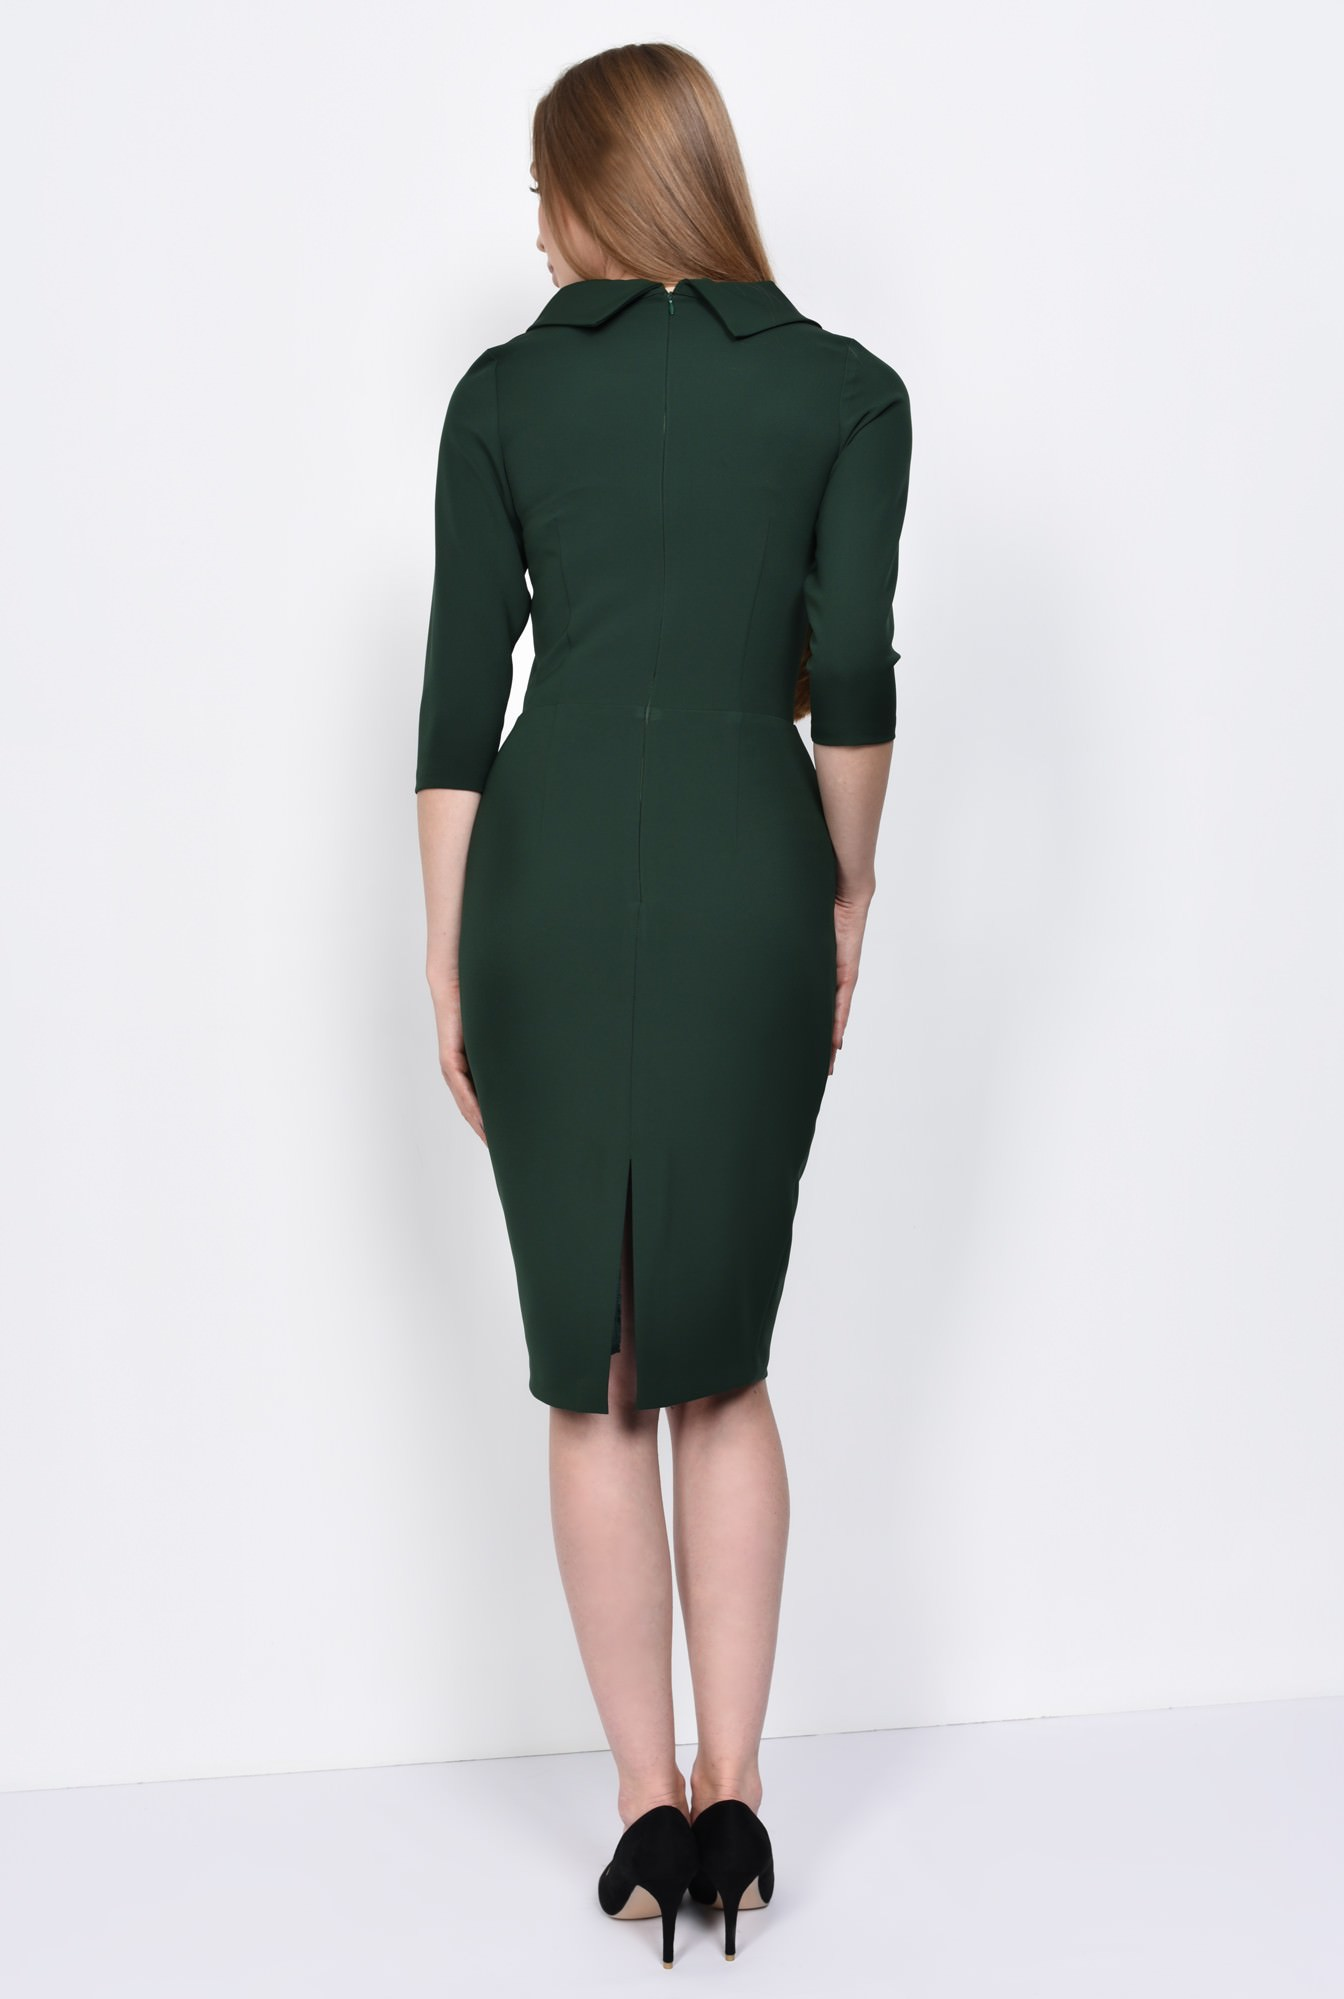 1 - ROCHIE OFFICE CONICA R 167-VERDE